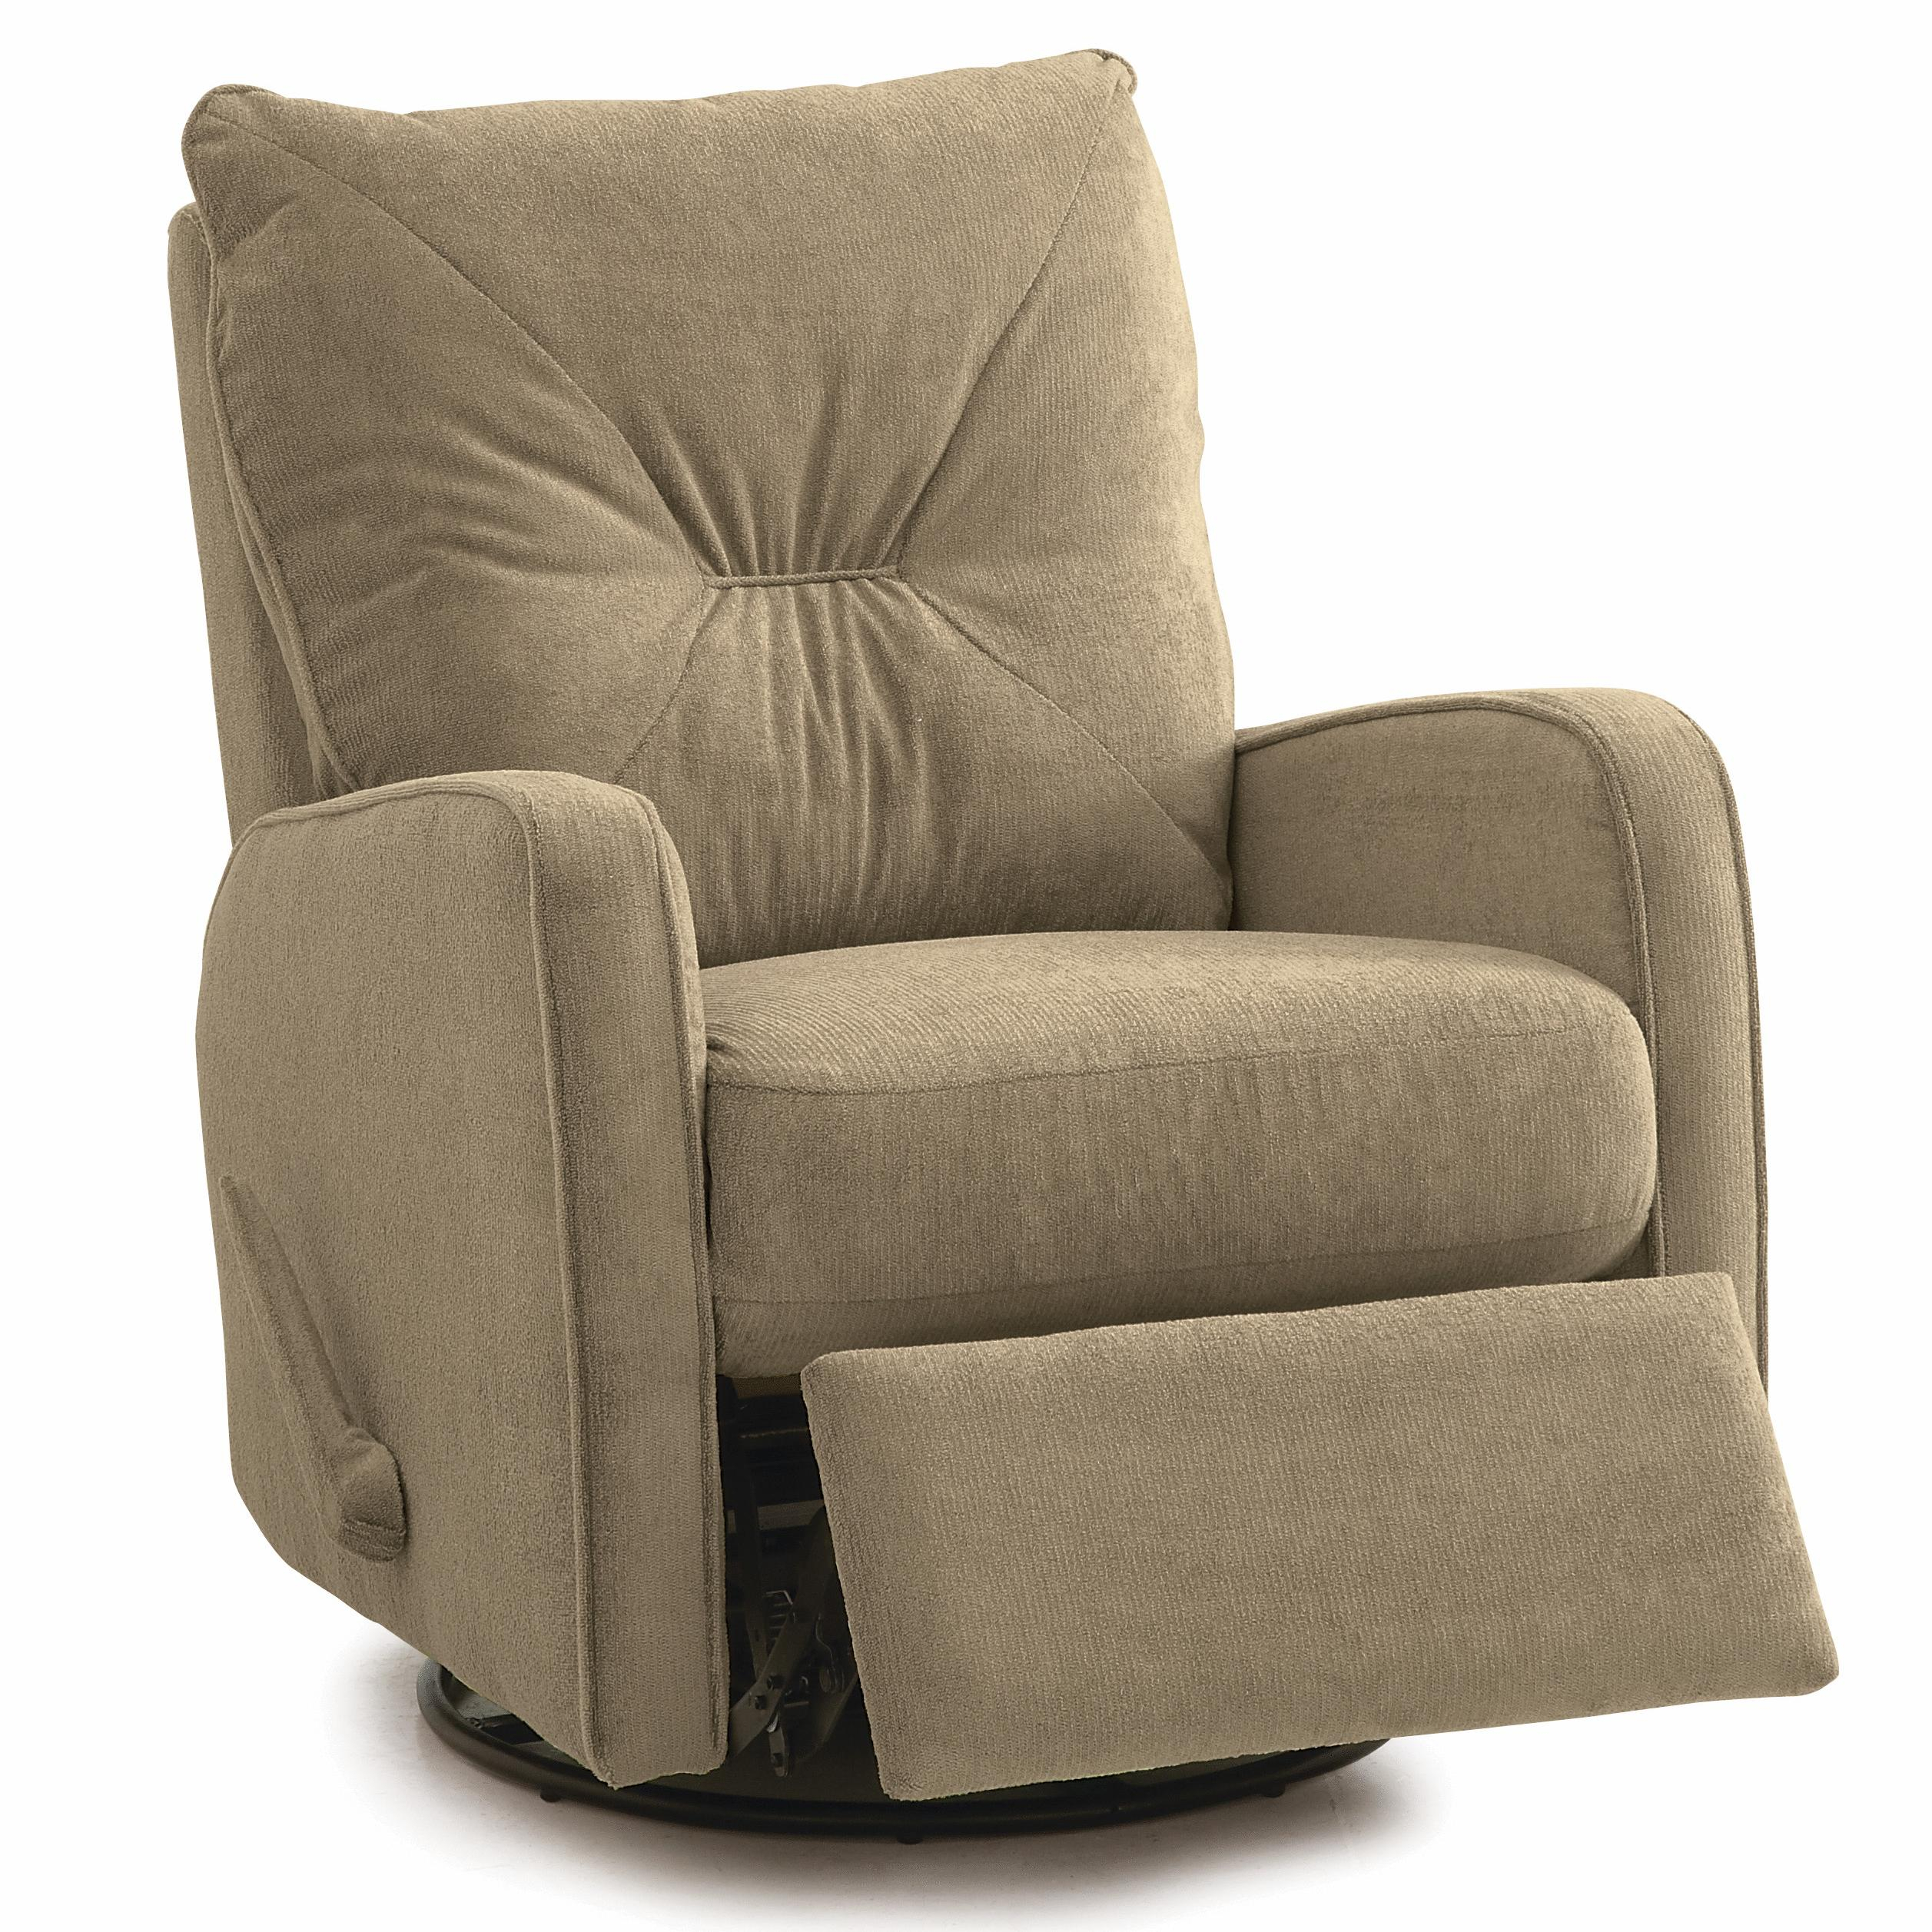 Palliser Theo 42002-33 Swivel Rocking Reclining Chair | Dunk for Theo Ii Swivel Chairs